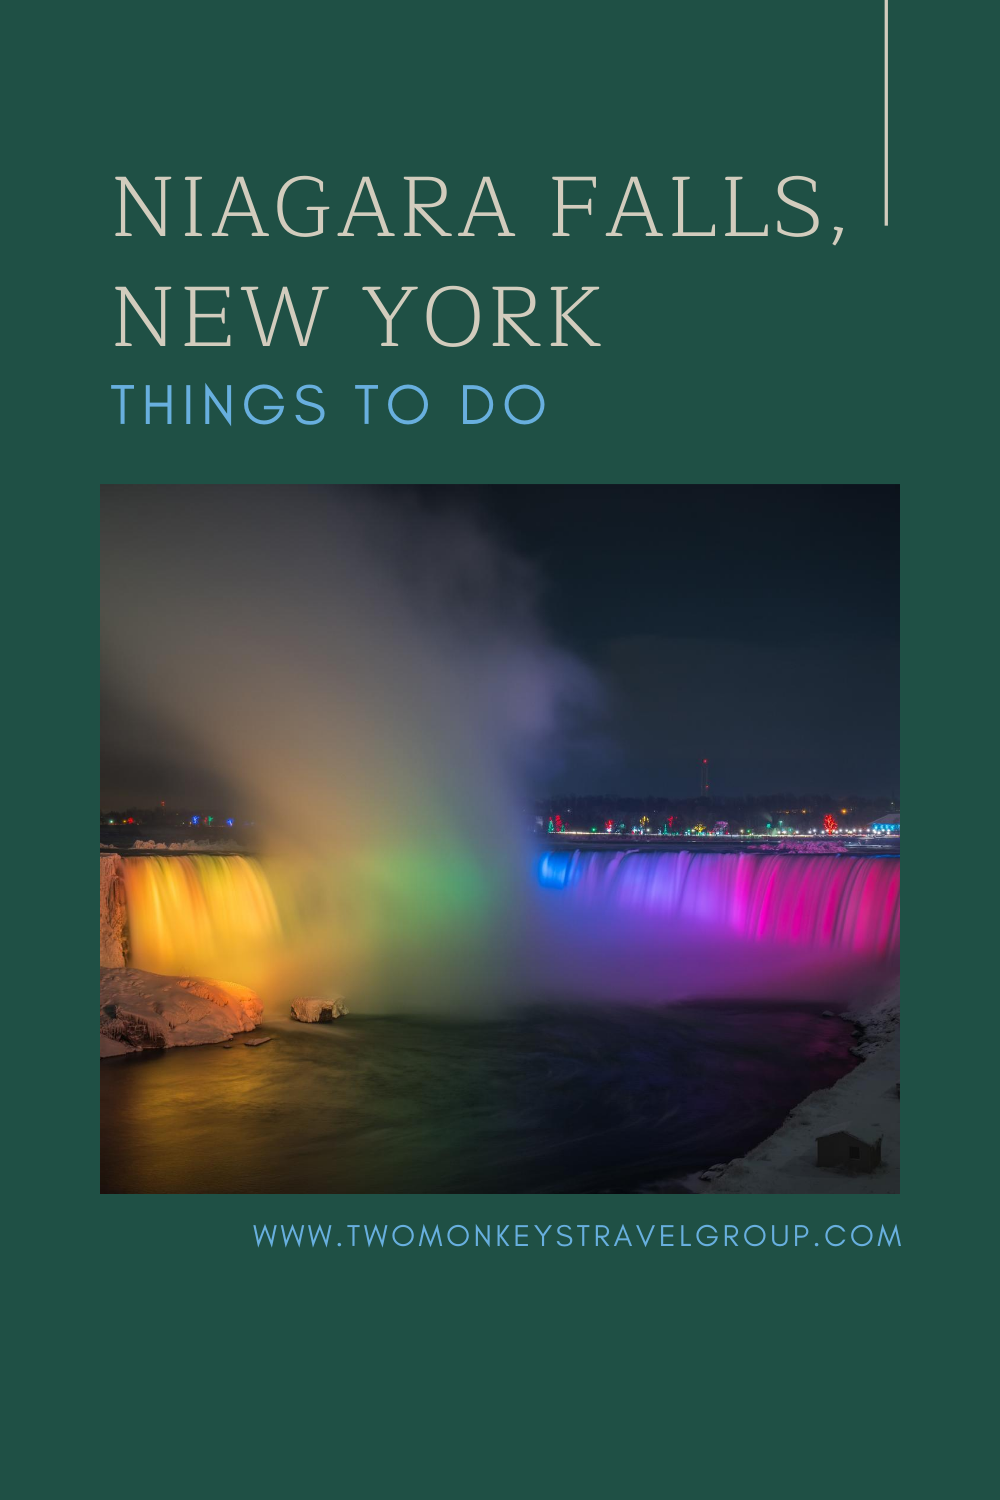 15 Things to do in Niagara Falls, New York [With Suggested Tours]